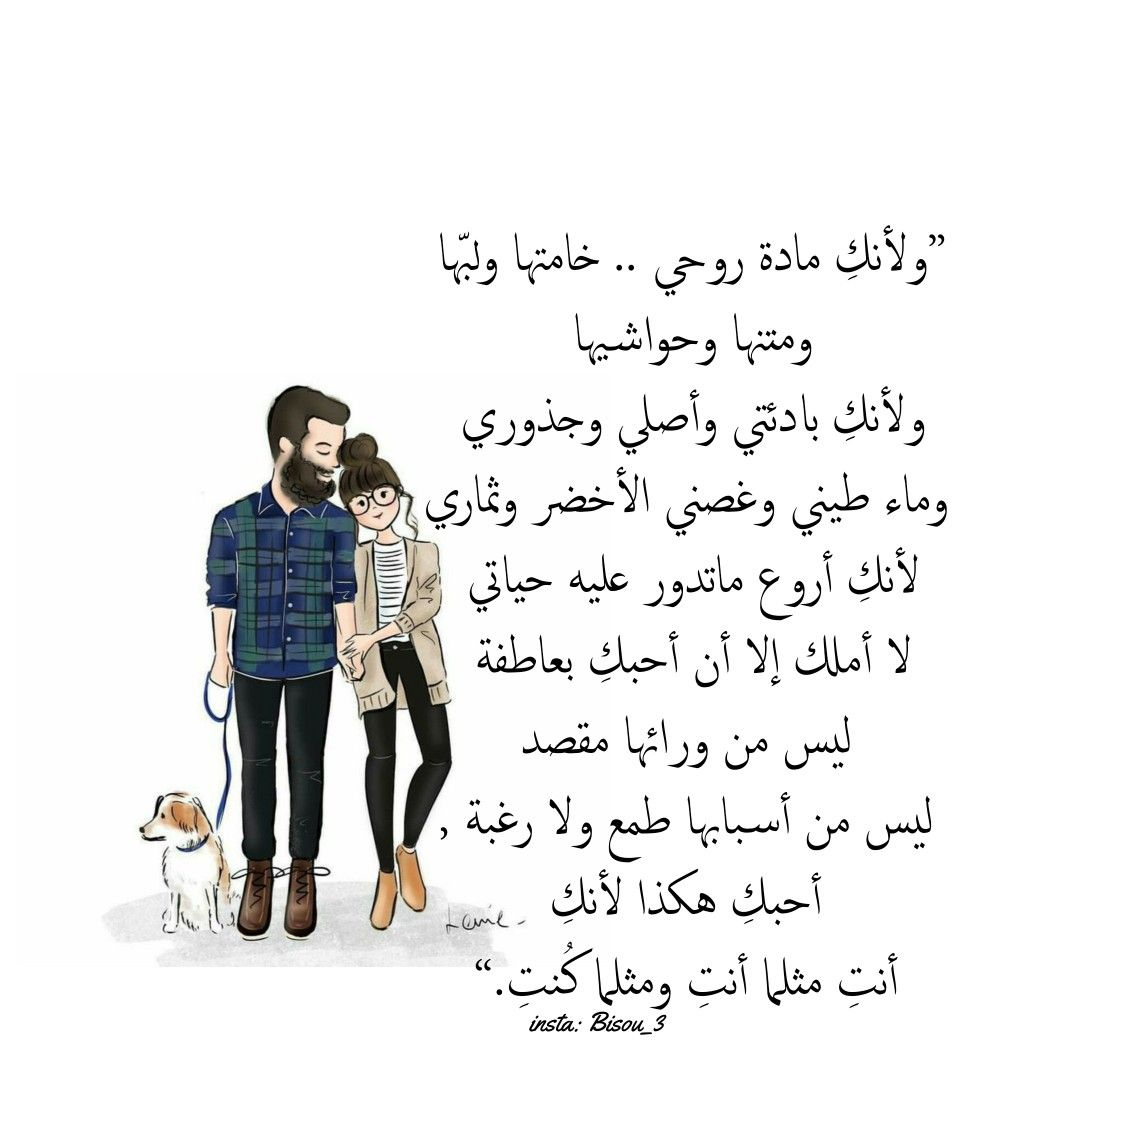 Pin By Syeℓma ۦ On حب Love U Arabic Love Quotes Love Words Love Quotes